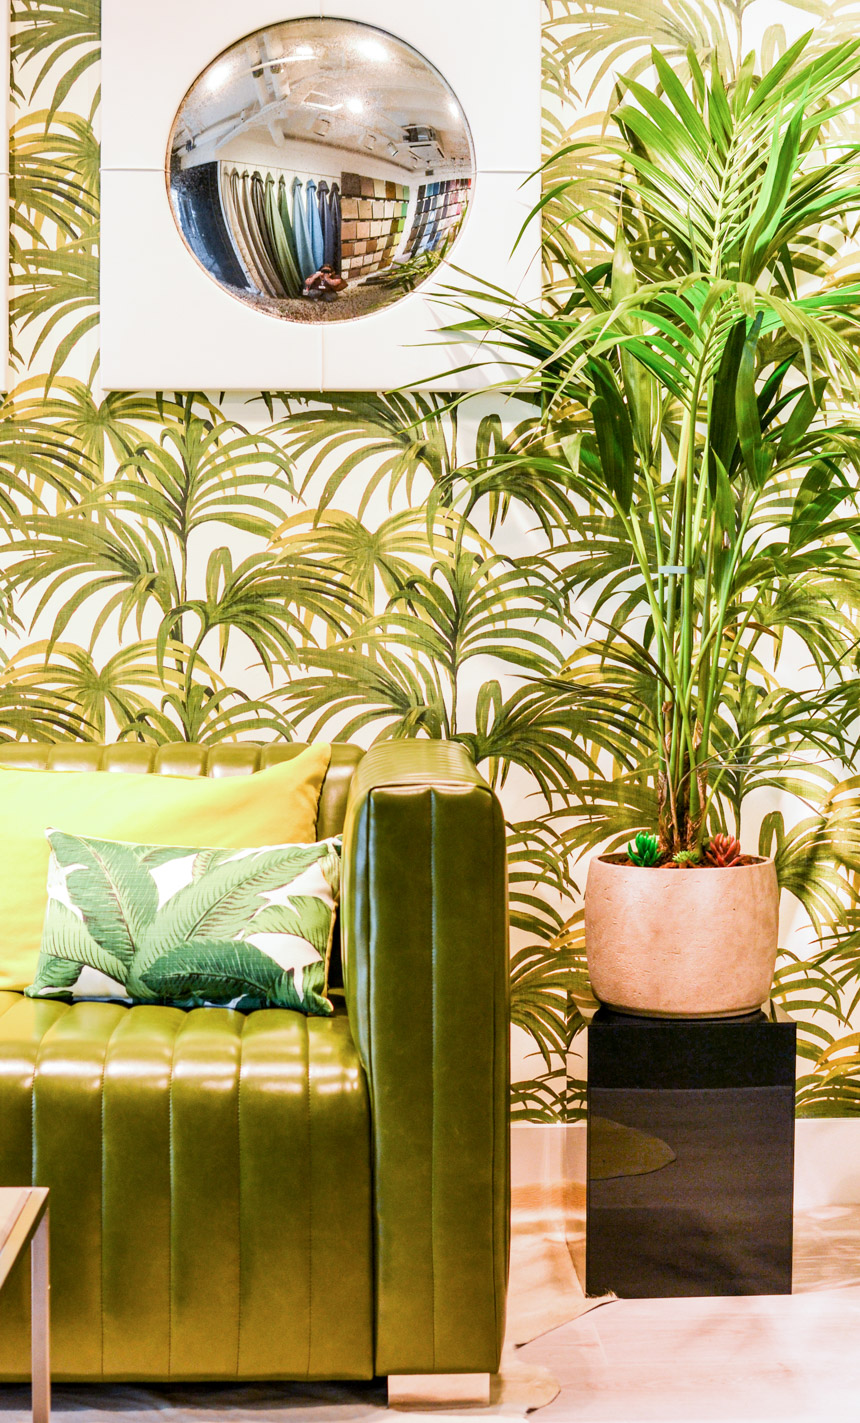 2016-2017 Interior Design Trends Home Decor Trend Report - Greenery & Palm Prints via Whistler Leather